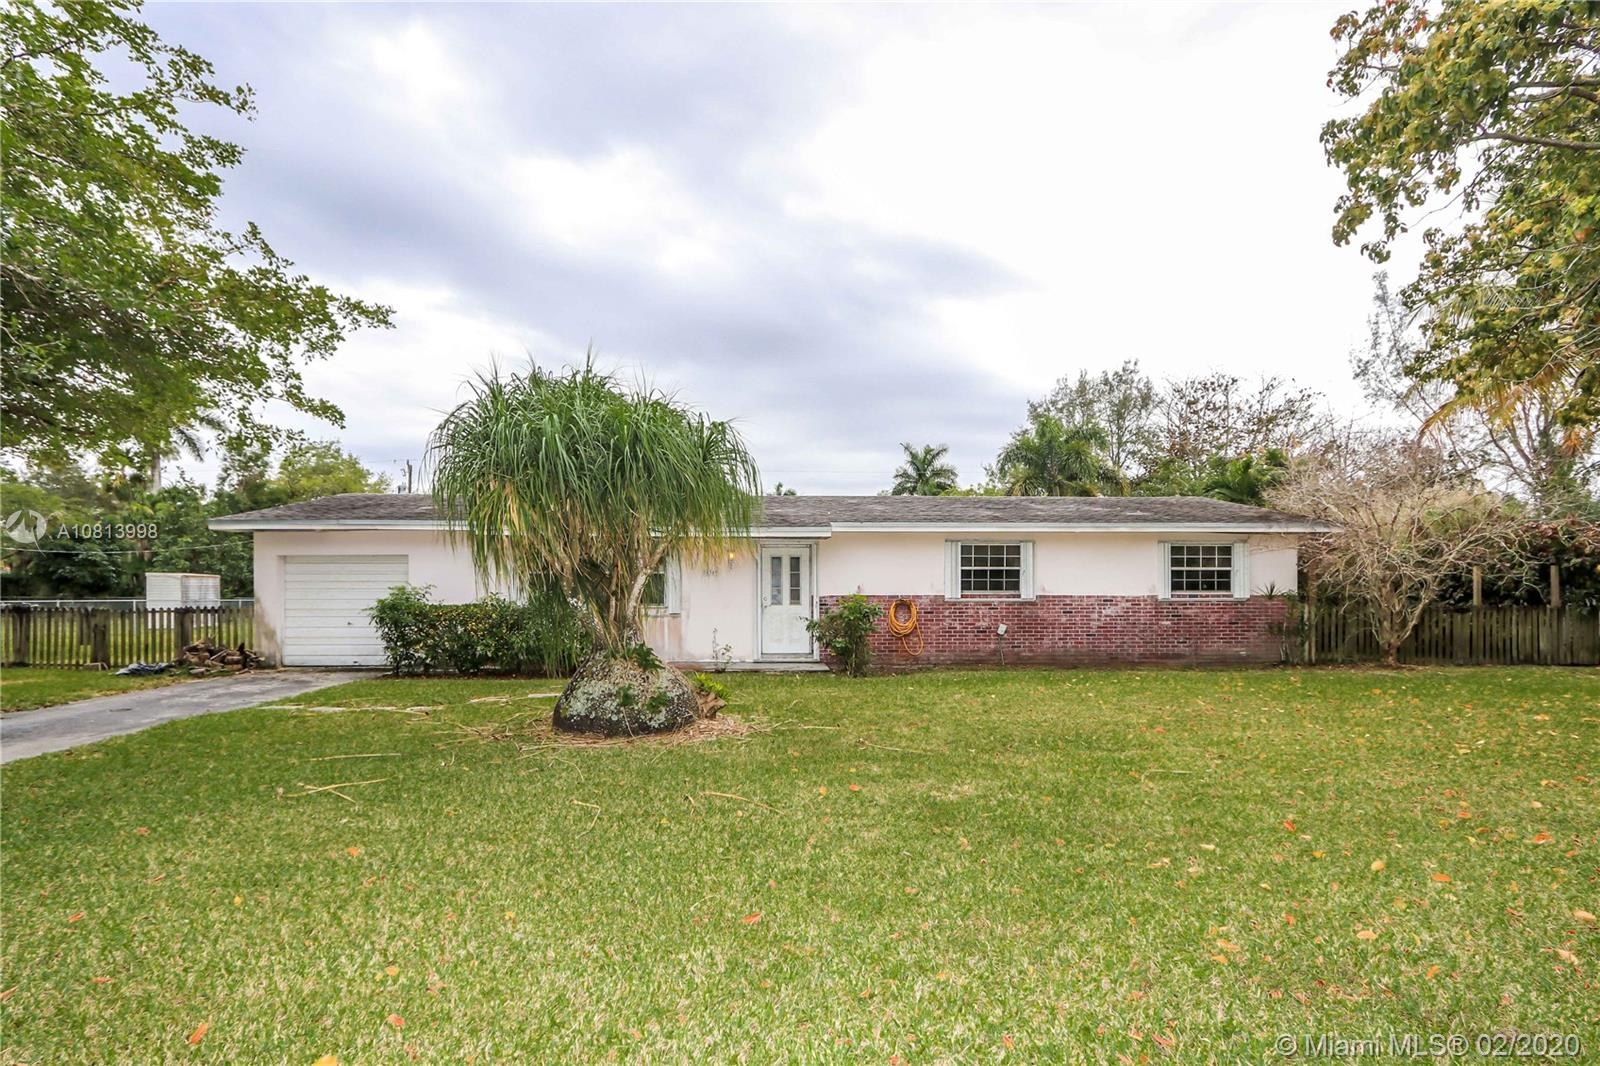 20300 SW 316th St, Homestead, FL 33030 - Homestead, FL real estate listing